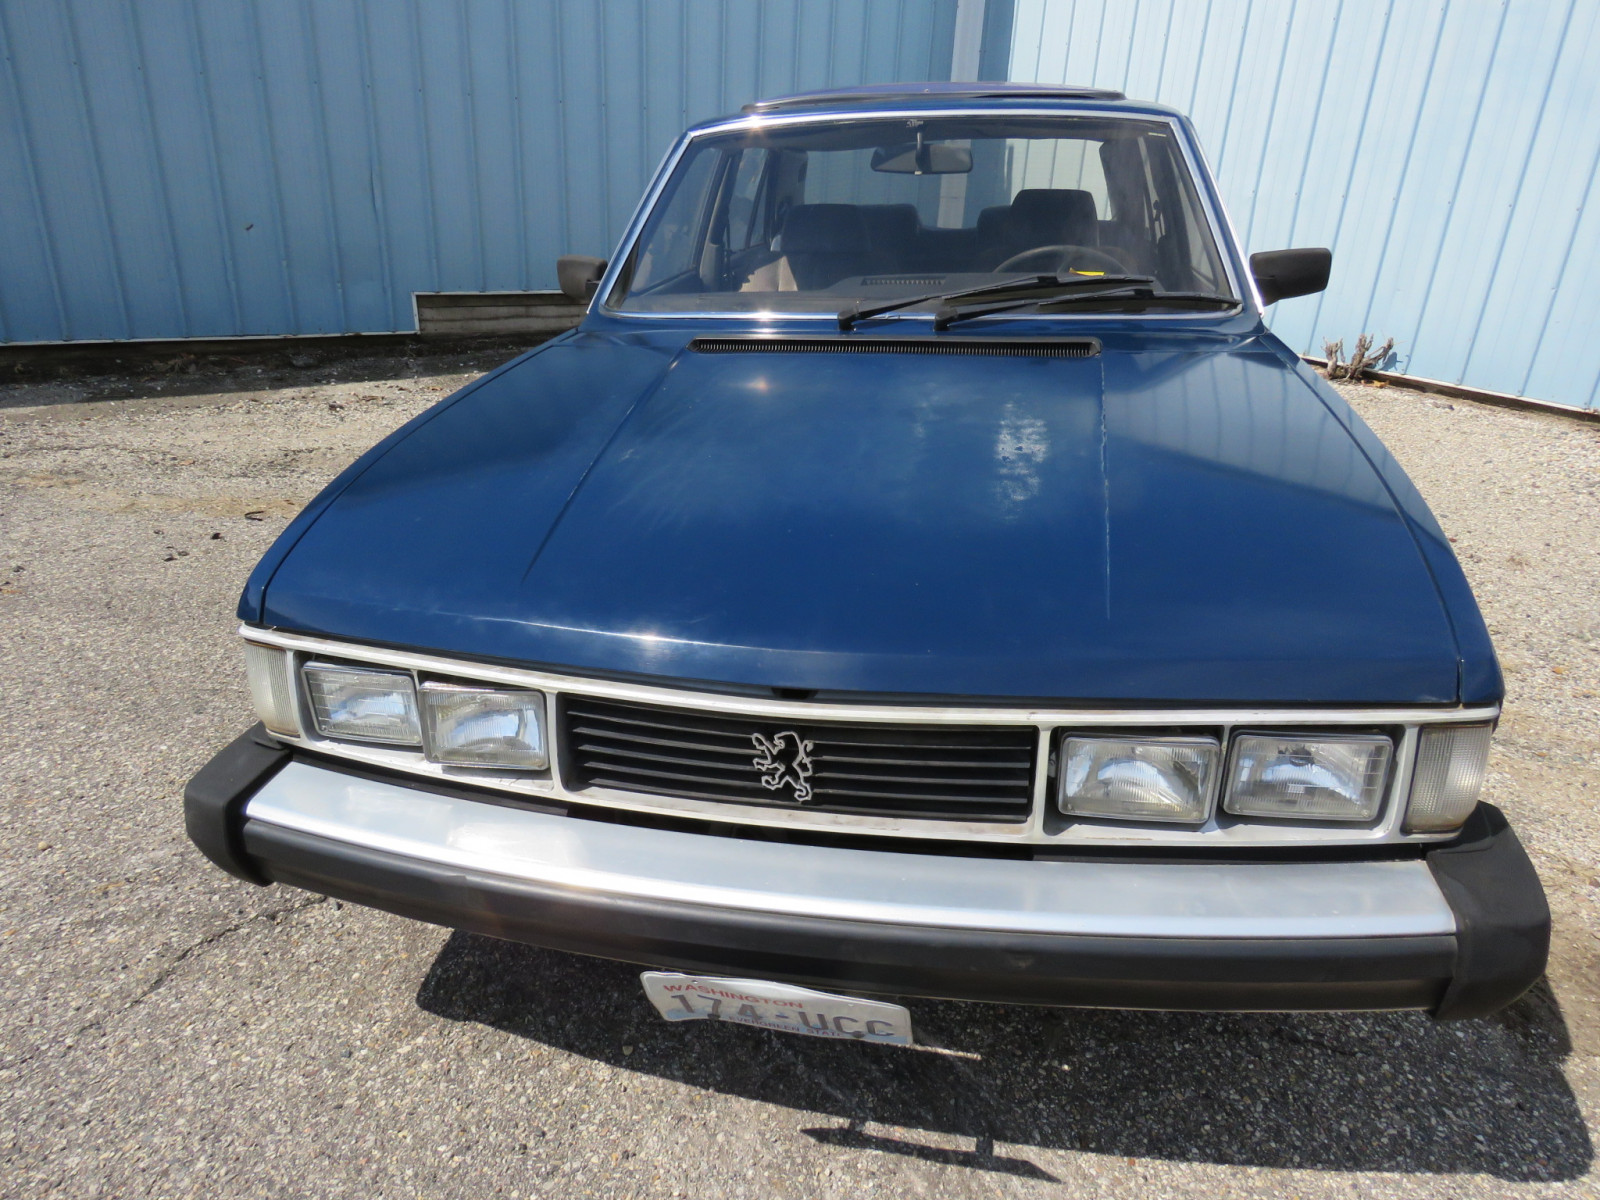 1982 Peugeot 604 Turbo Diesel 4dr Sedan - Image 3